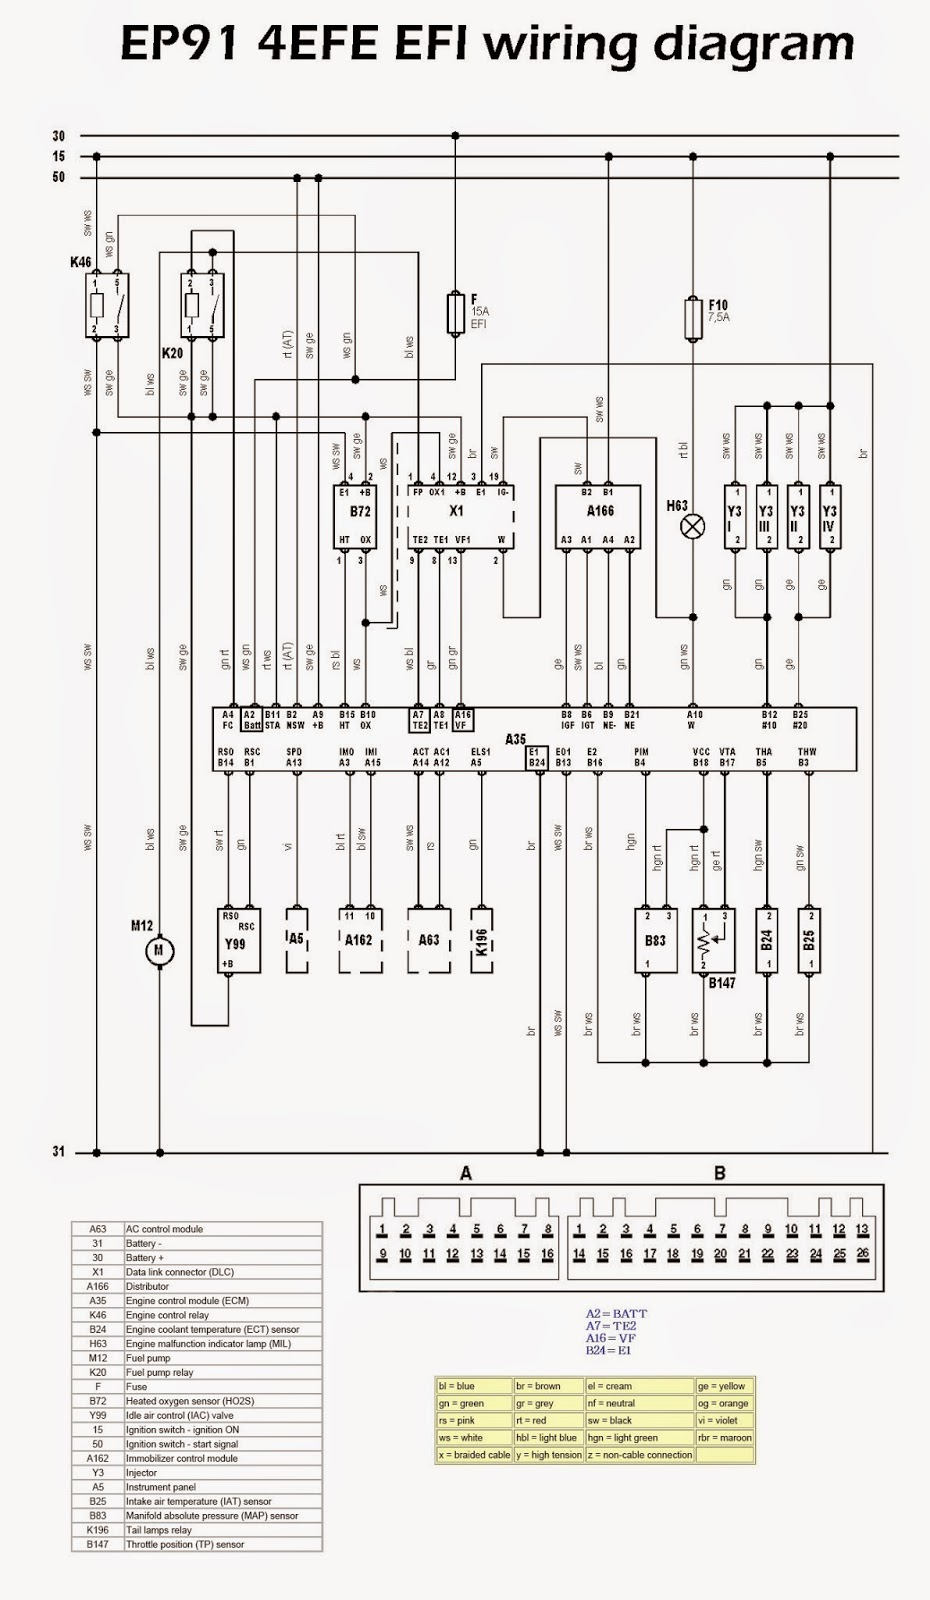 wiring diagram toyota 3sfe circuit diagram templatewiring diagram toyota 3sfe wiring schematic diagram3s fe engine control wiring diagram best wiring library bluebird